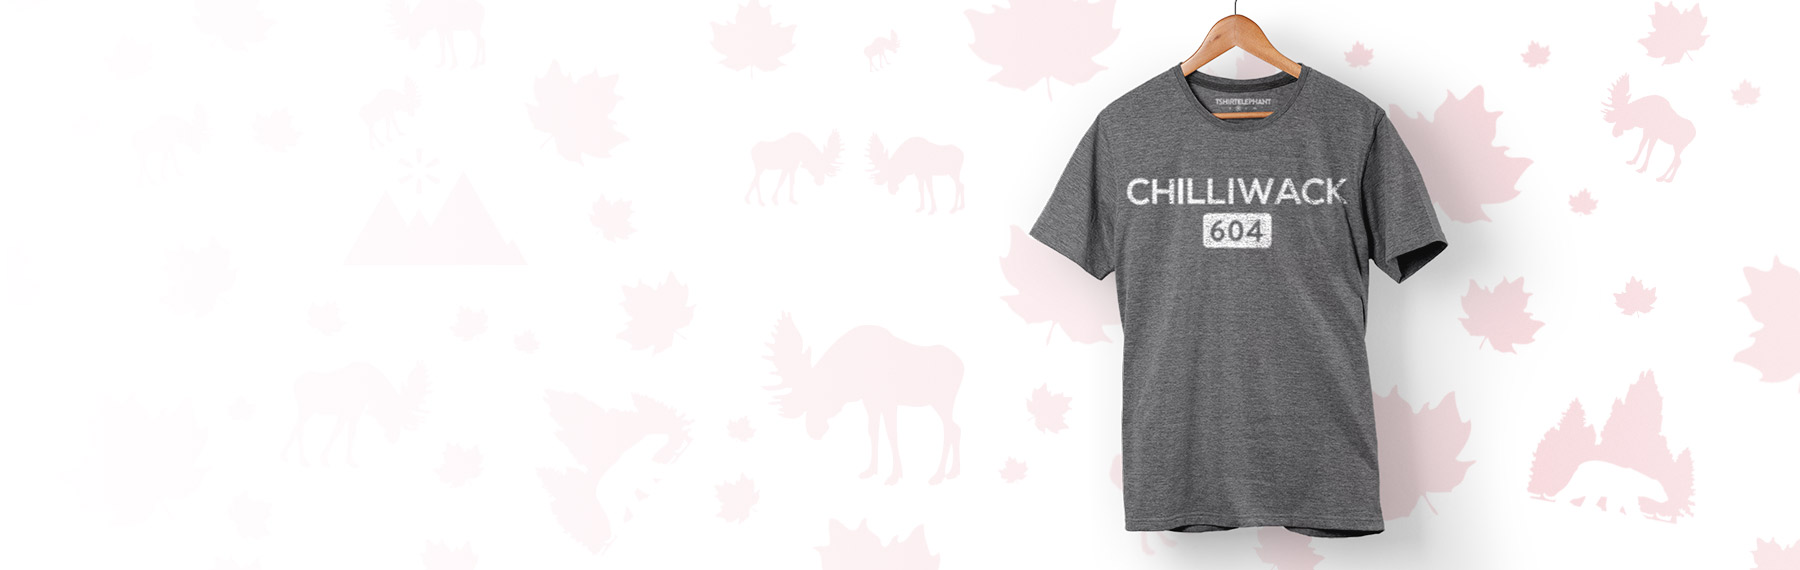 Design and Order Custom T-Shirts in Chilliwack, BC | T-Shirt Elephant